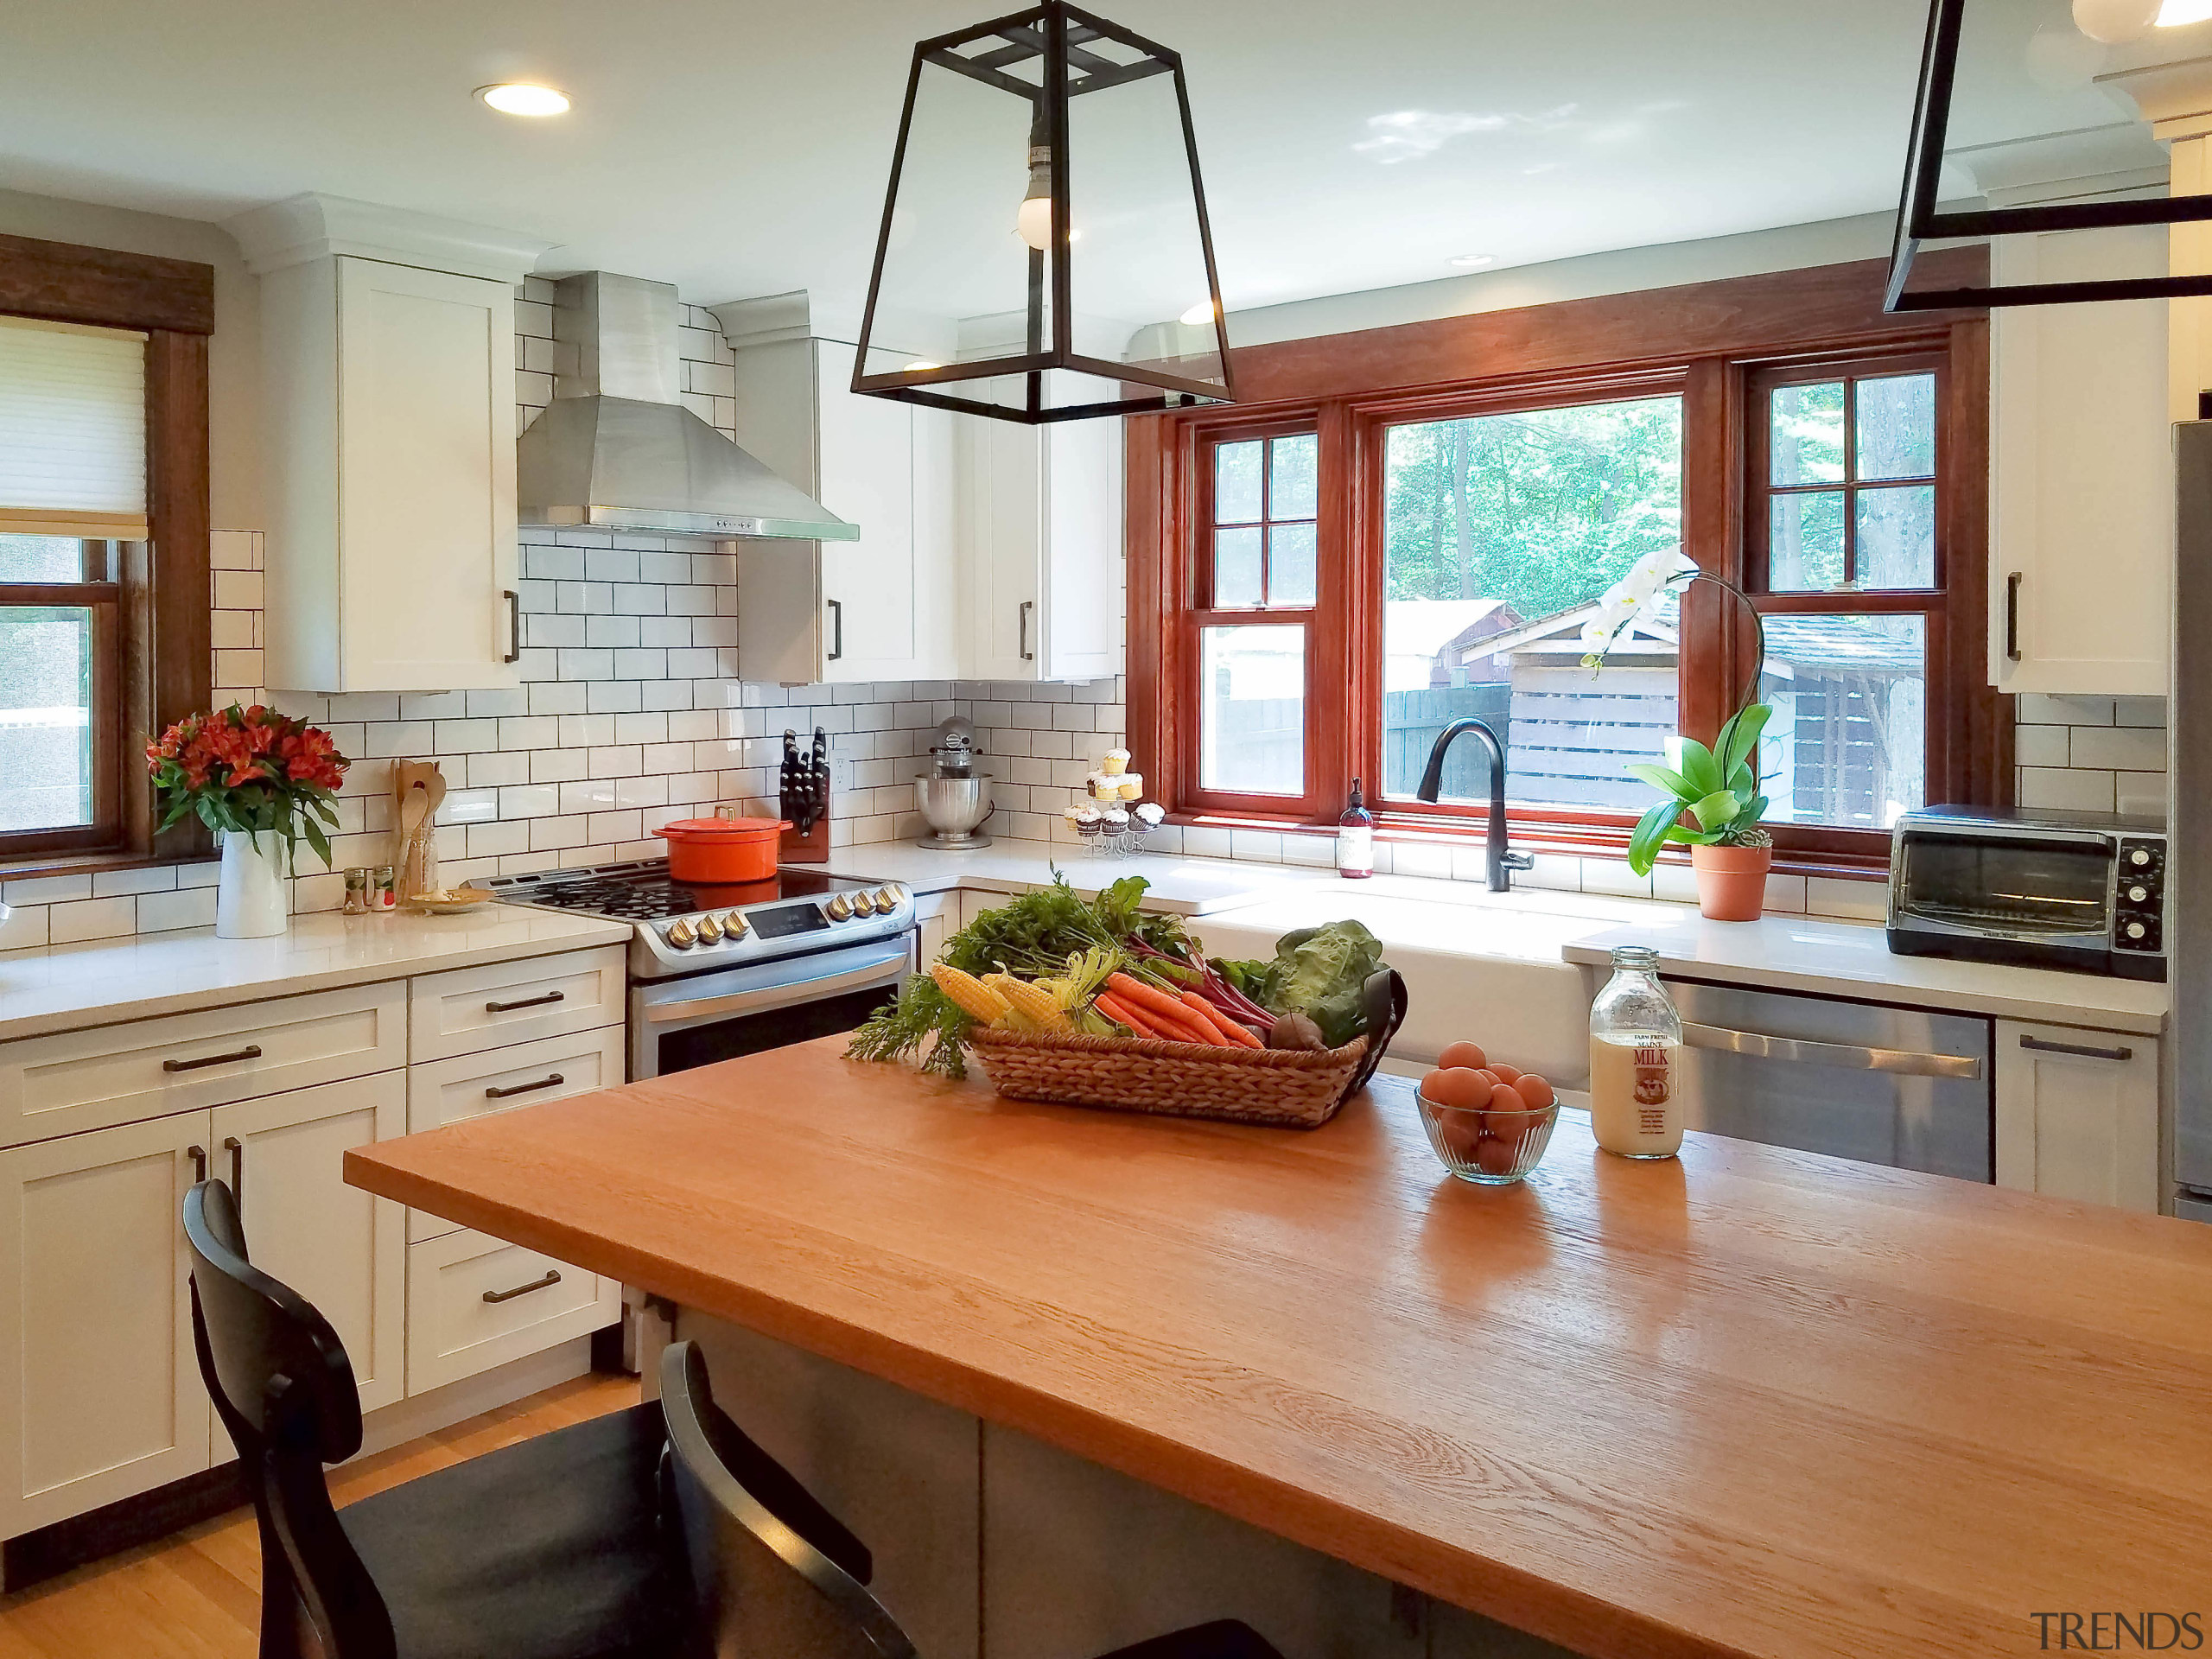 The kitchen certainly has a farmhouse feel to countertop, dining room, hardwood, interior design, kitchen, real estate, room, window, gray